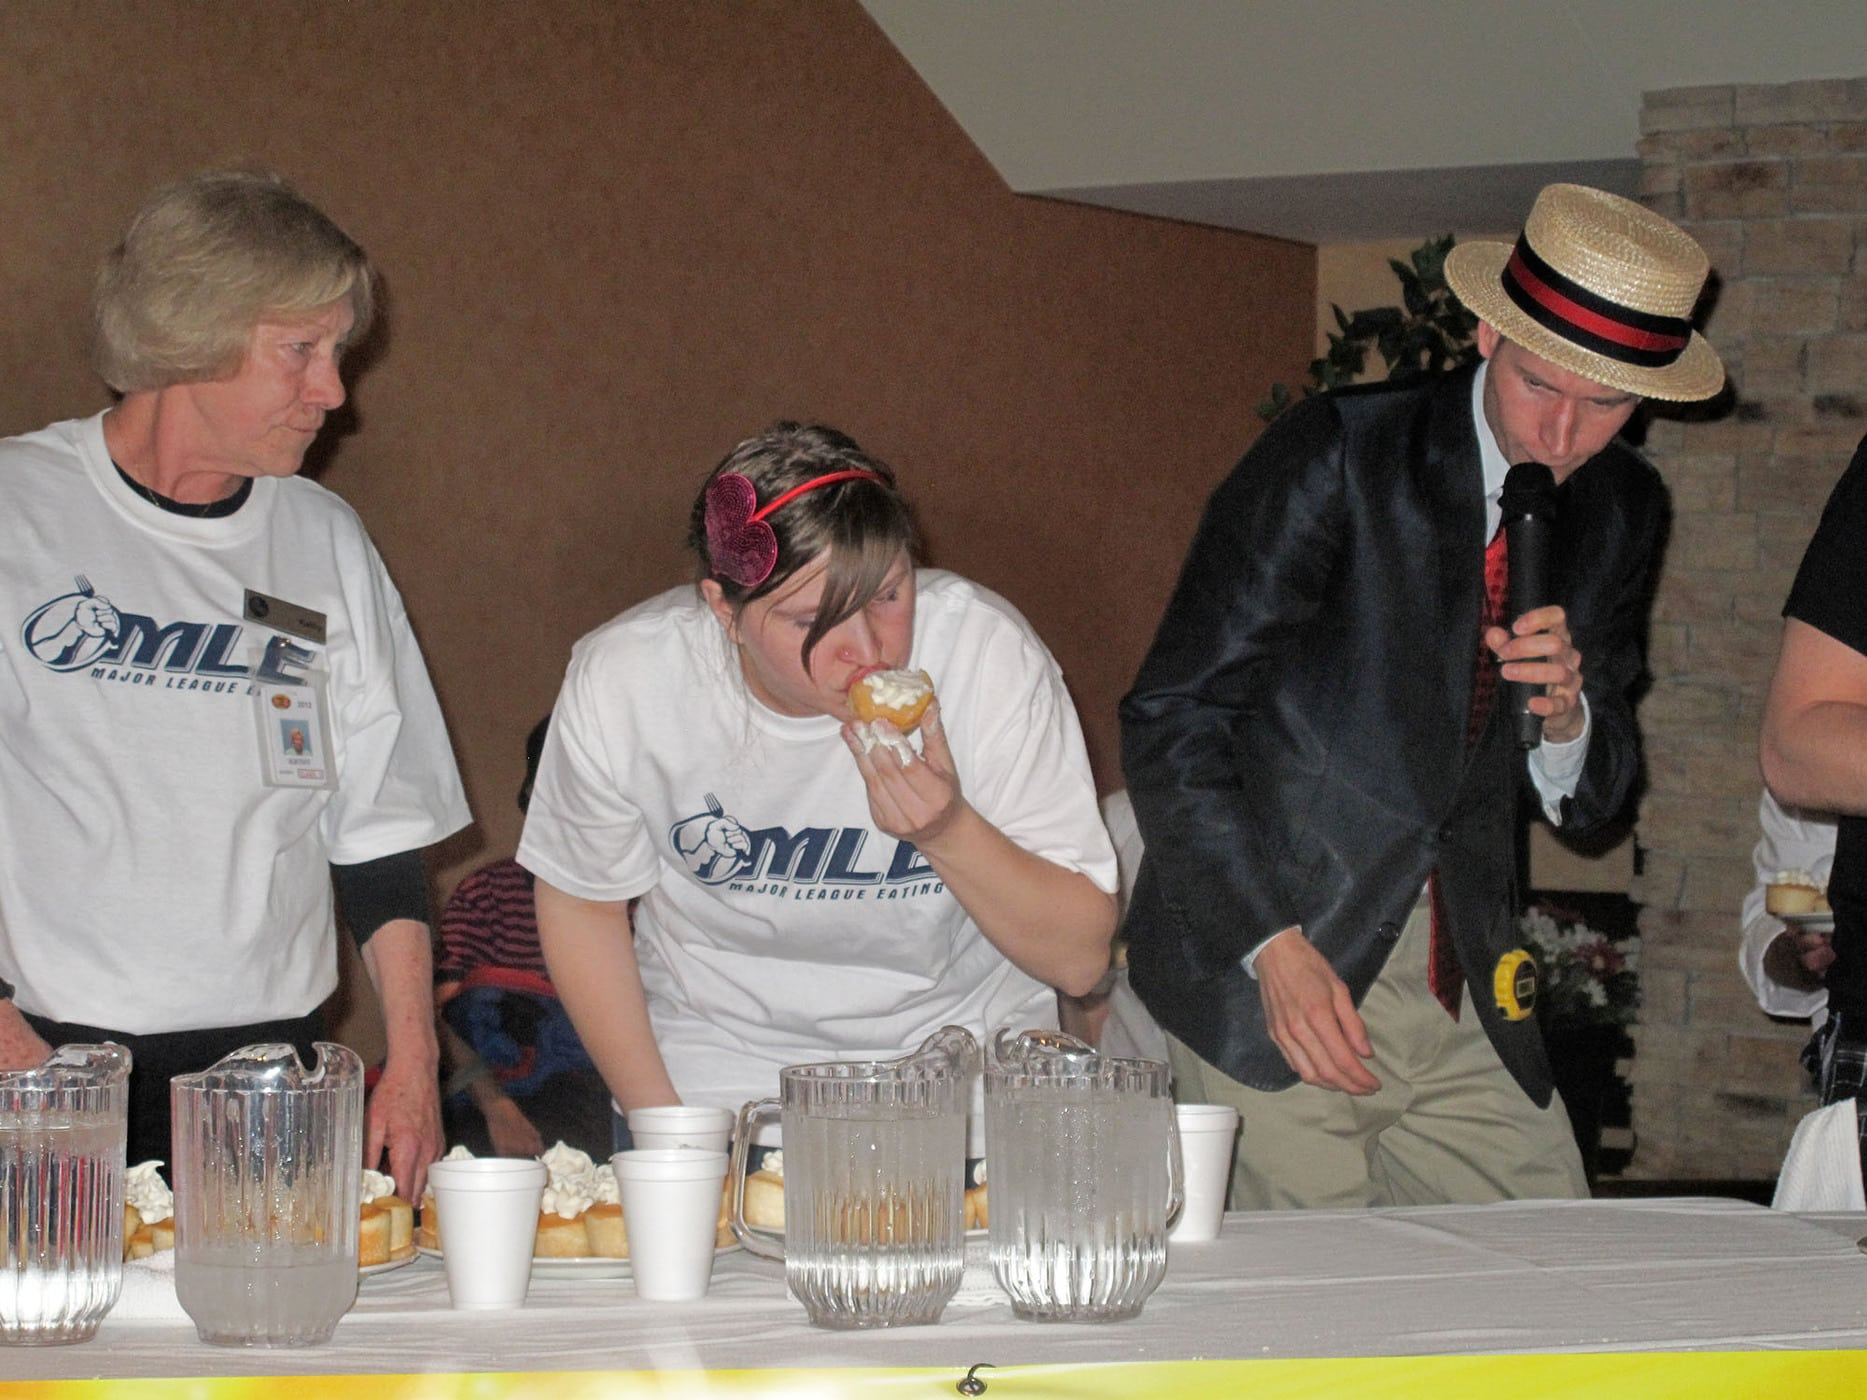 Val makes her competitive eating debut at the World Cupcake Eating championship.